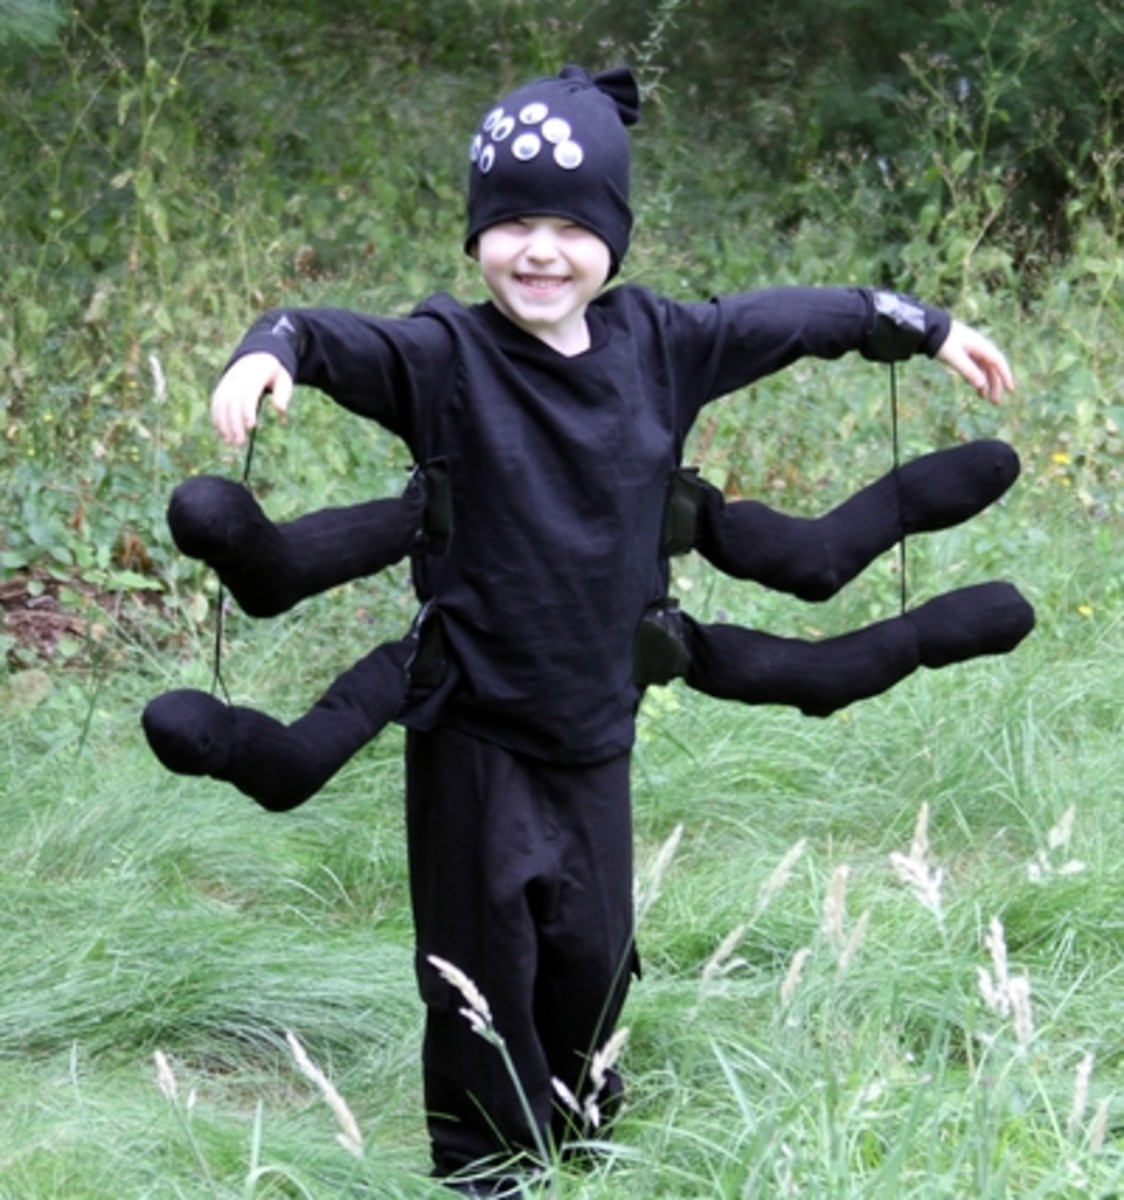 Spider using old black clothes and black socks.